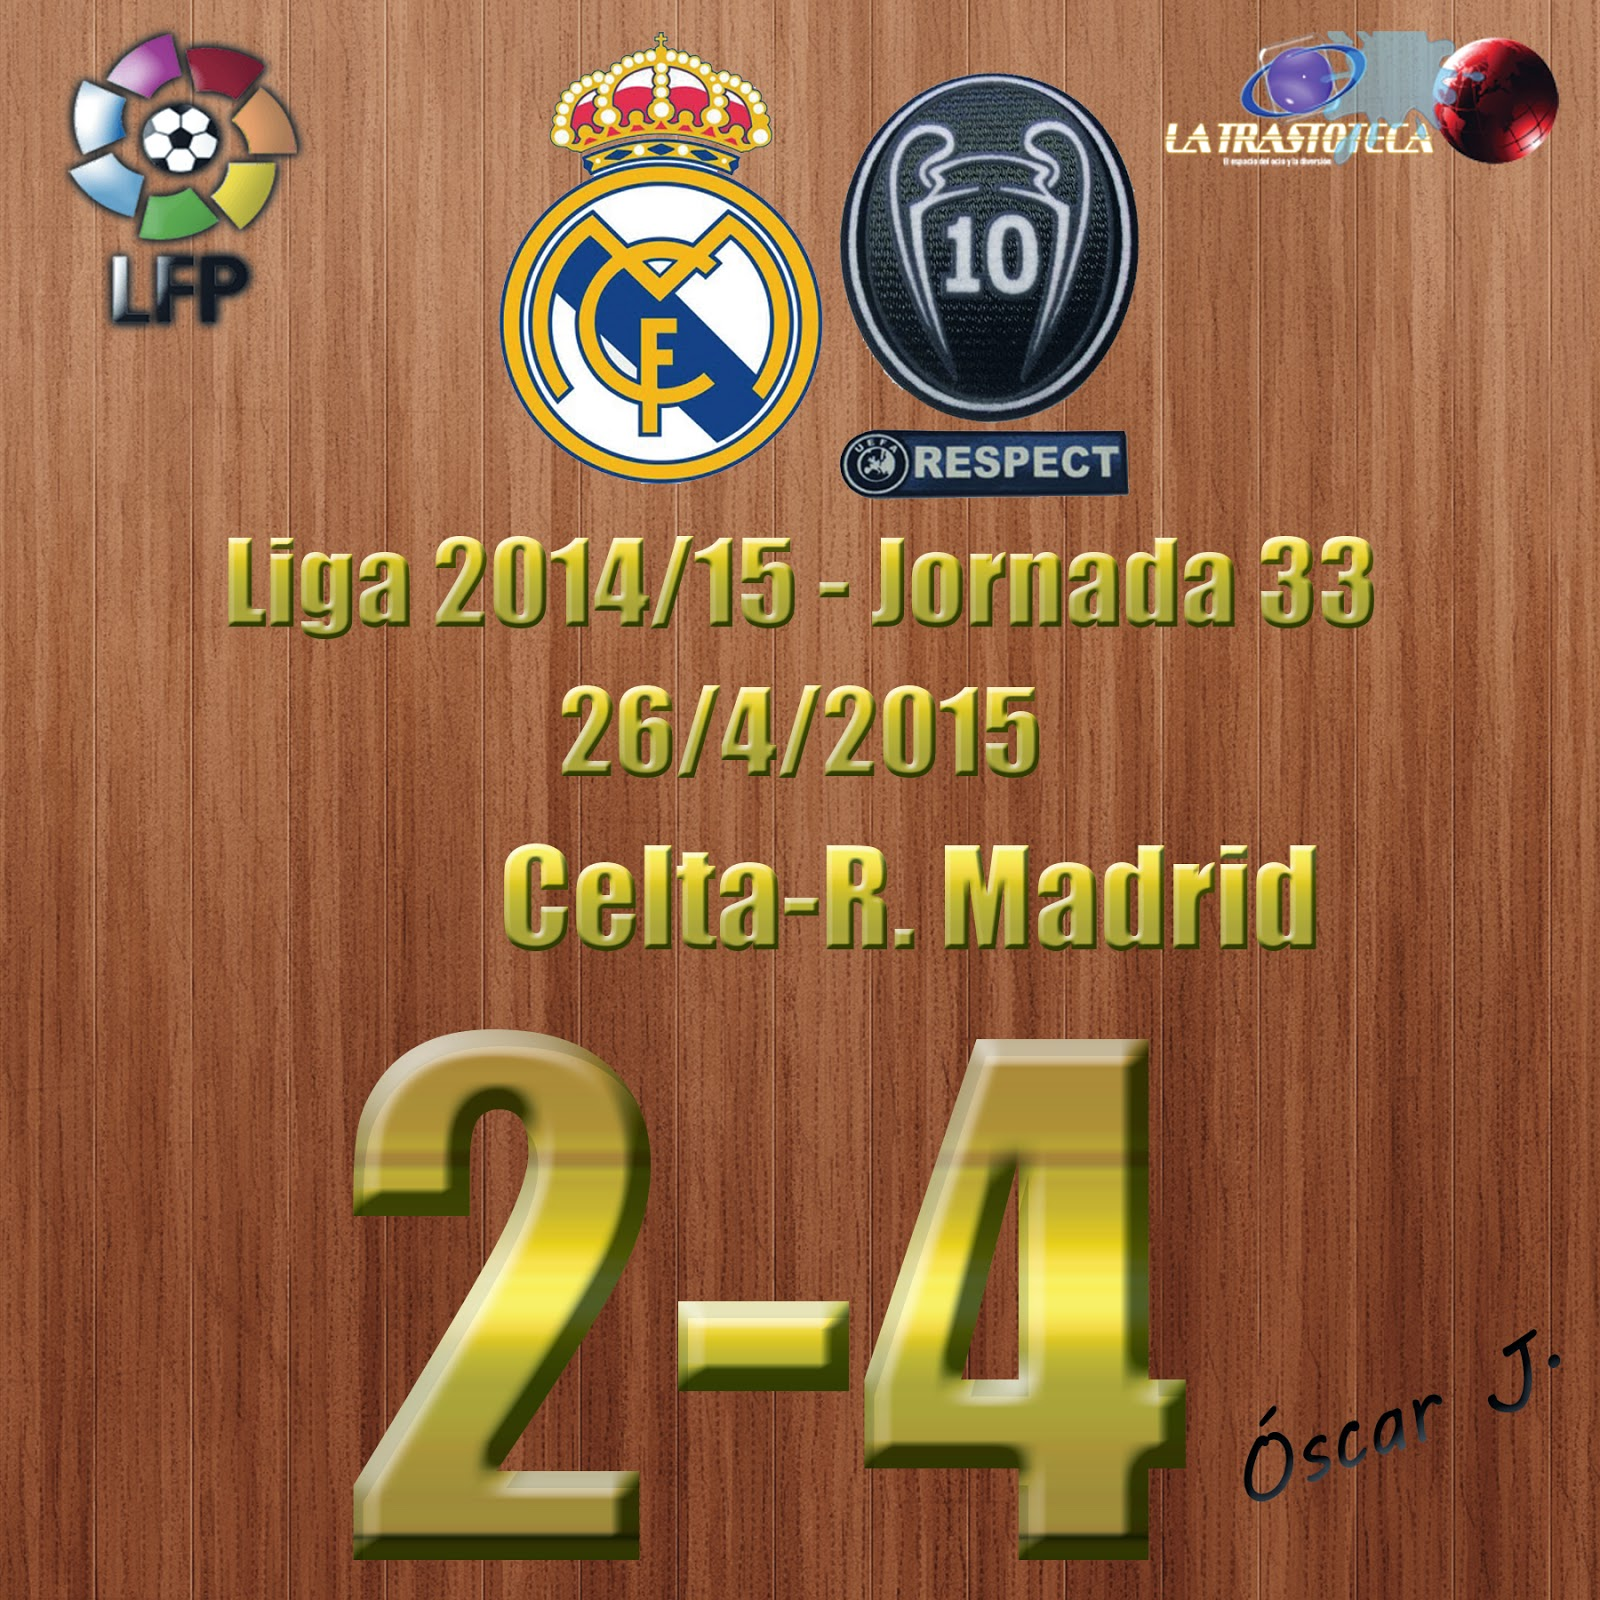 Celta 2-4 Real Madrid - Liga 2014/15 - Jornada 33 - (26/4/2015)